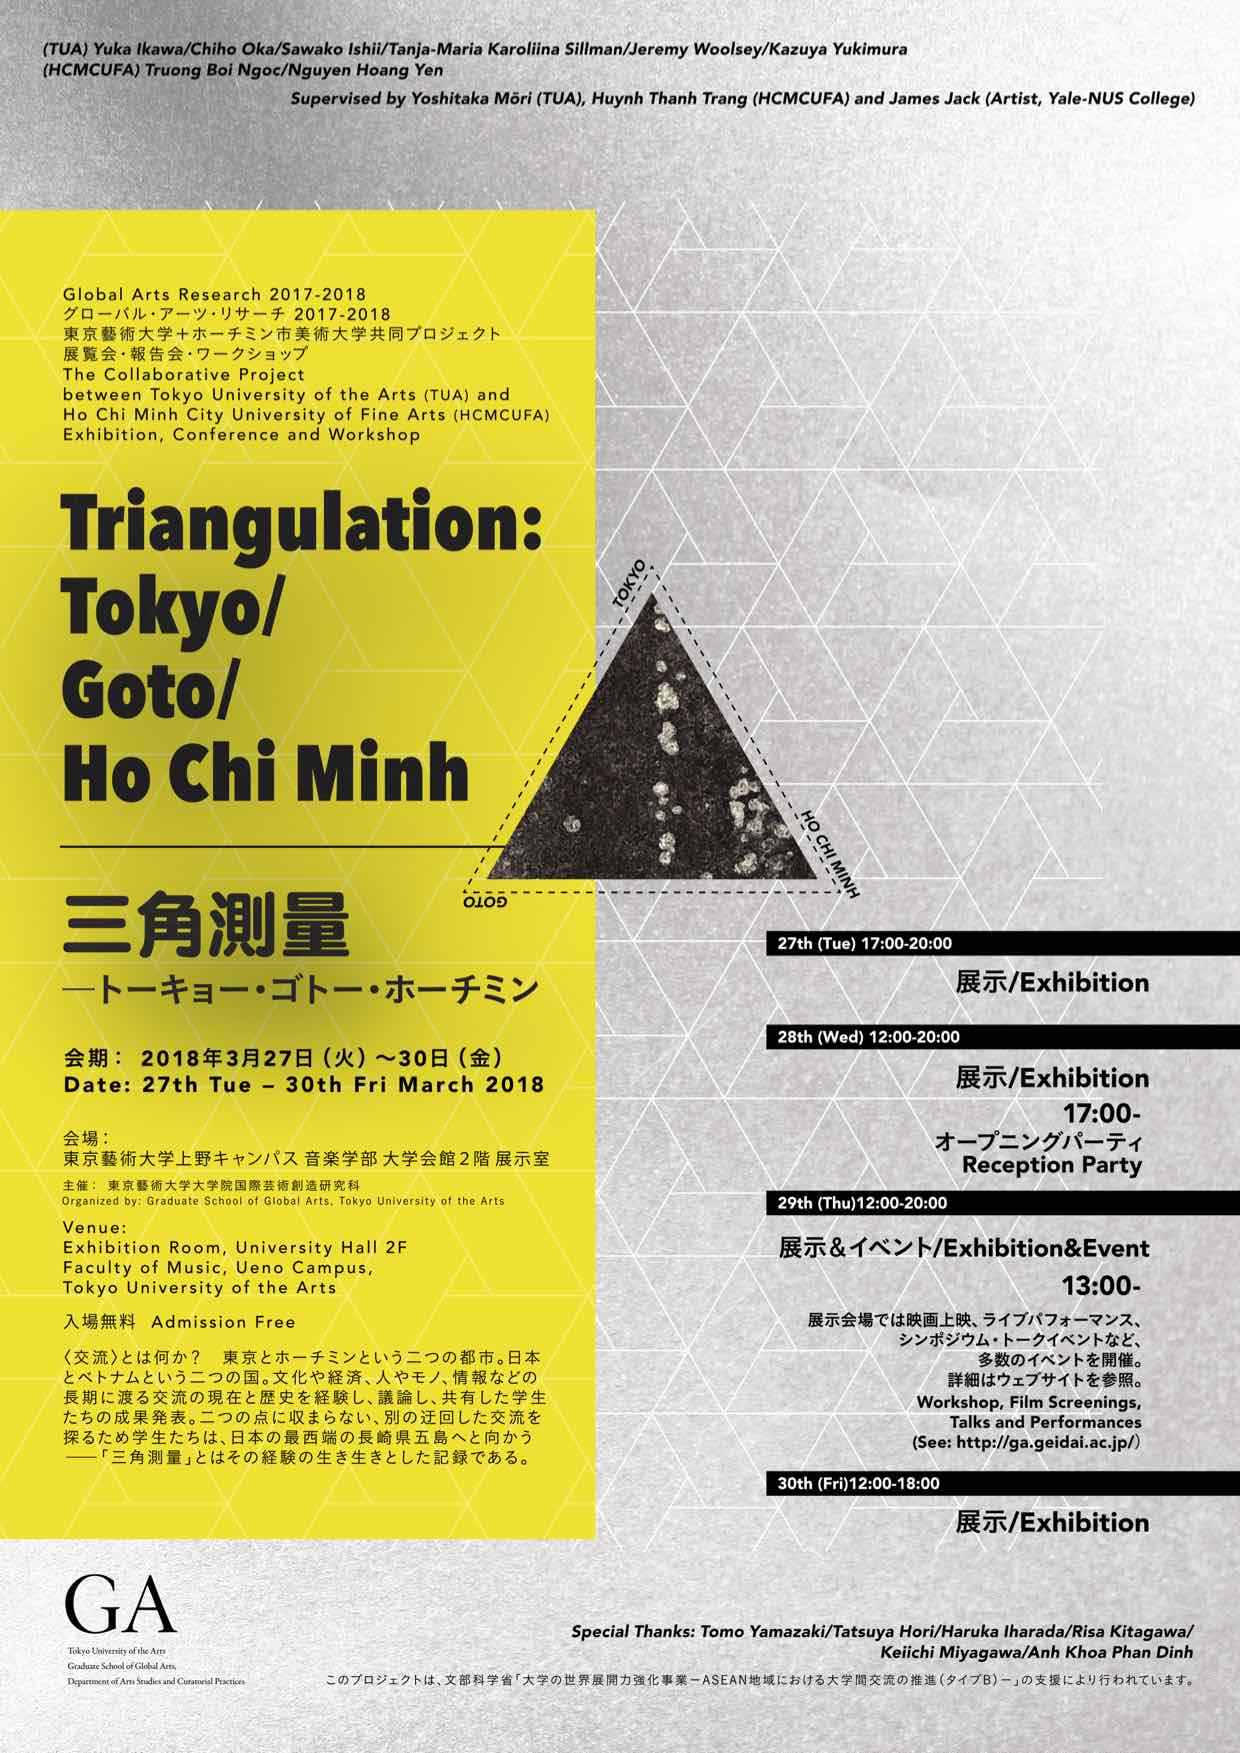 Global Arts Research 2017-2018The Collaborative Project Between Tokyo University Of The Arts And Ho Chi Minh City University Of Fine ArtsExhibition, Conference And WorkshopTriangulation: Tokyo — Goto — Ho Chi Minh